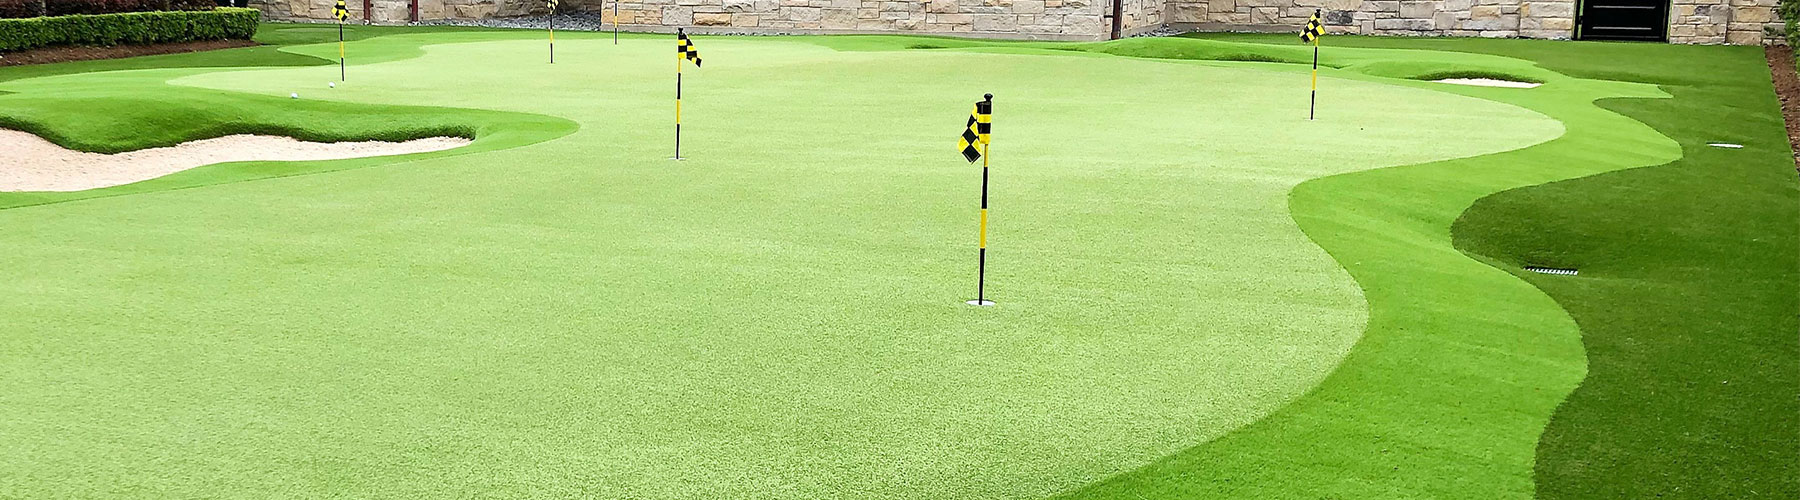 Artificial Turf Putting Greens: The Greener Grass on the Other Side